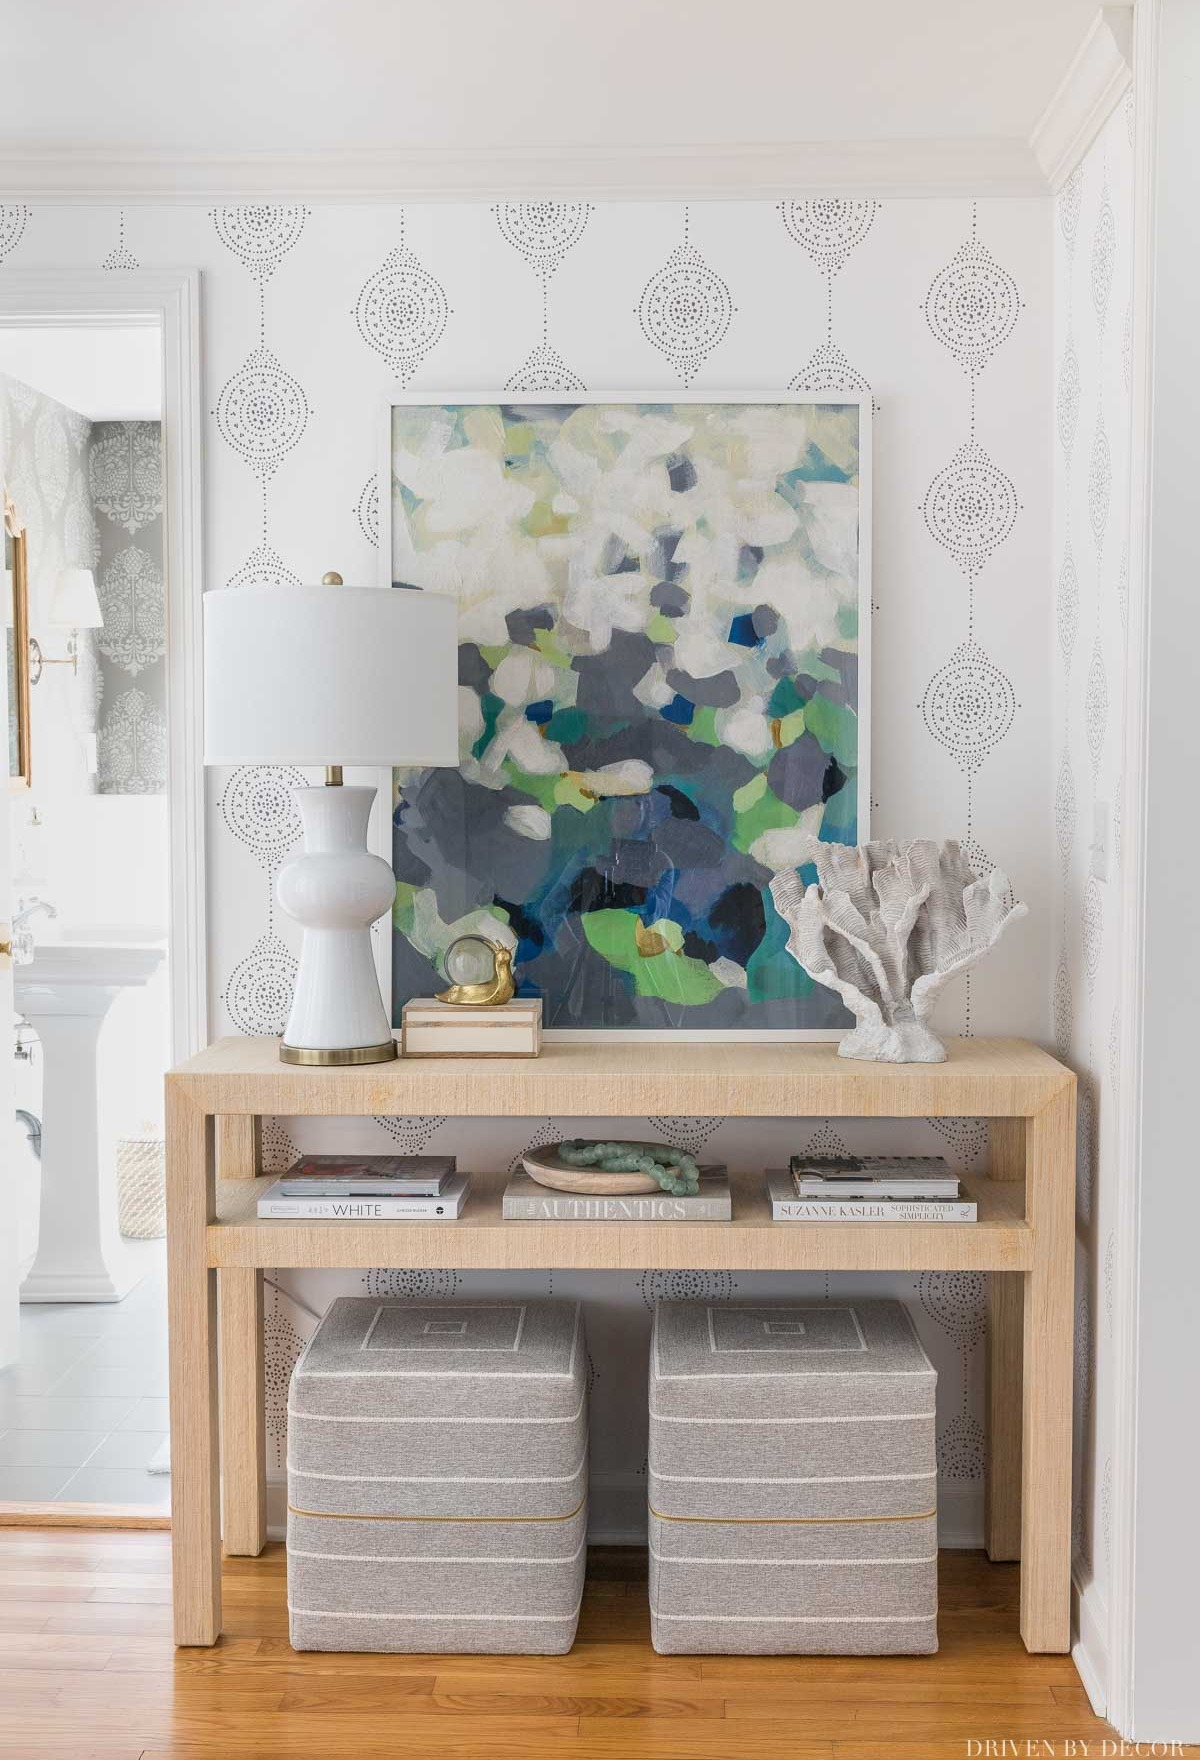 So happy with how my entryway came together with wallpaper, console table, and accessories